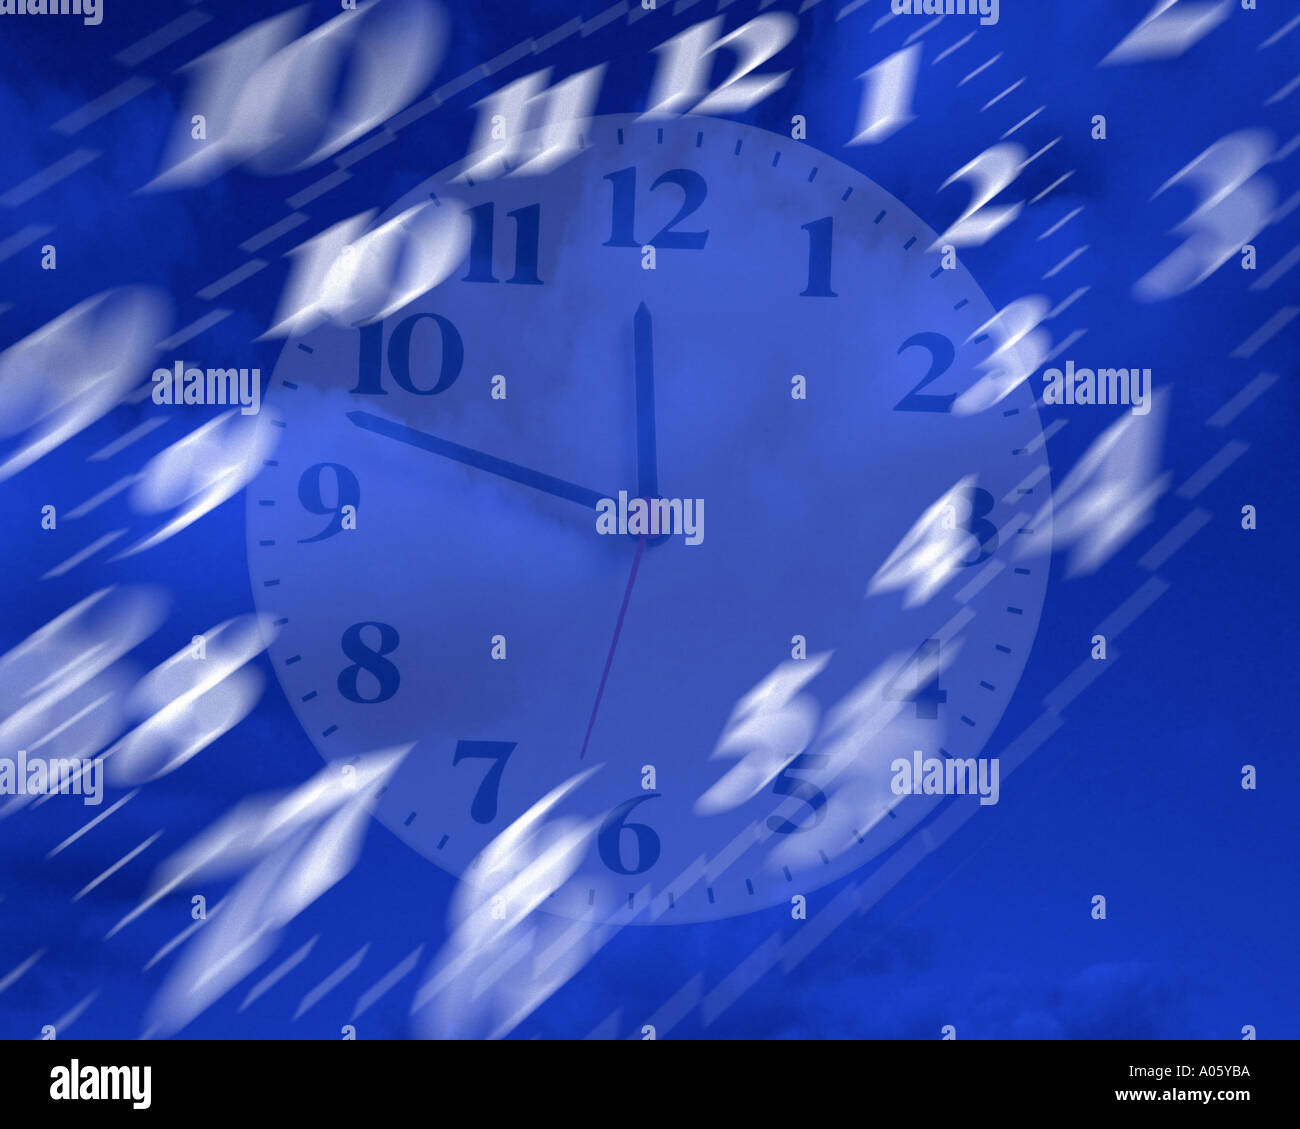 DIGITAL CONCEPT: Tempus fugit or Time Flies - Stock Image